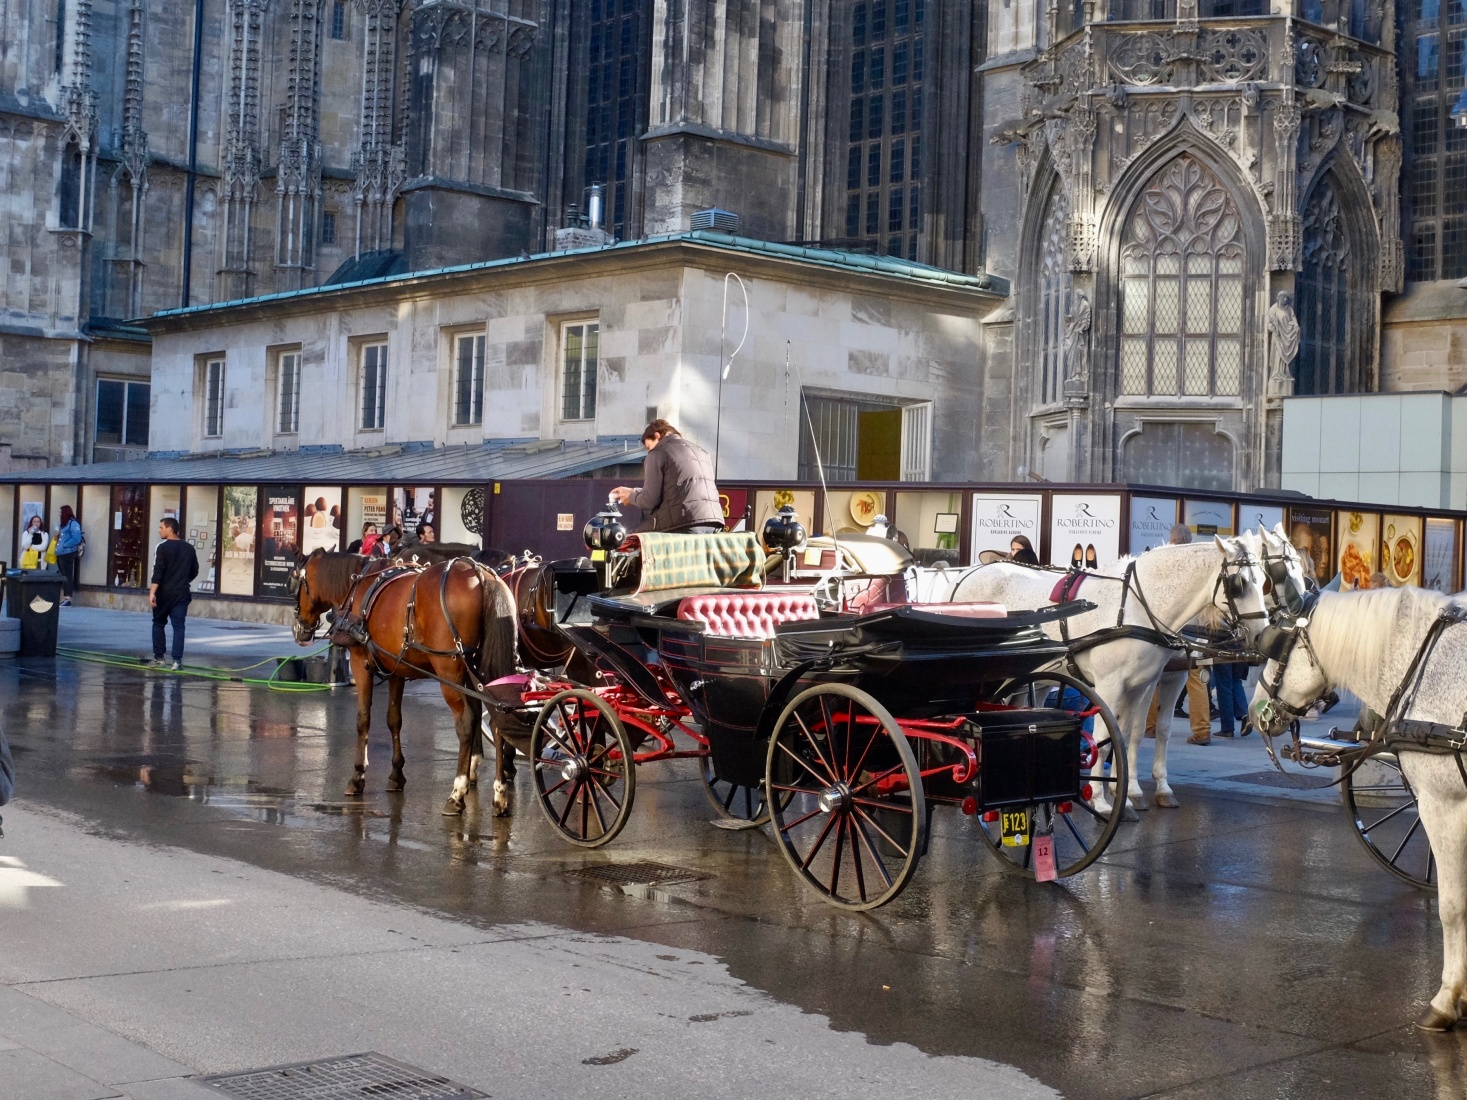 A horse-drawn carriage waiting outside St. Stephen's Cathedral in Vienna, Austria.